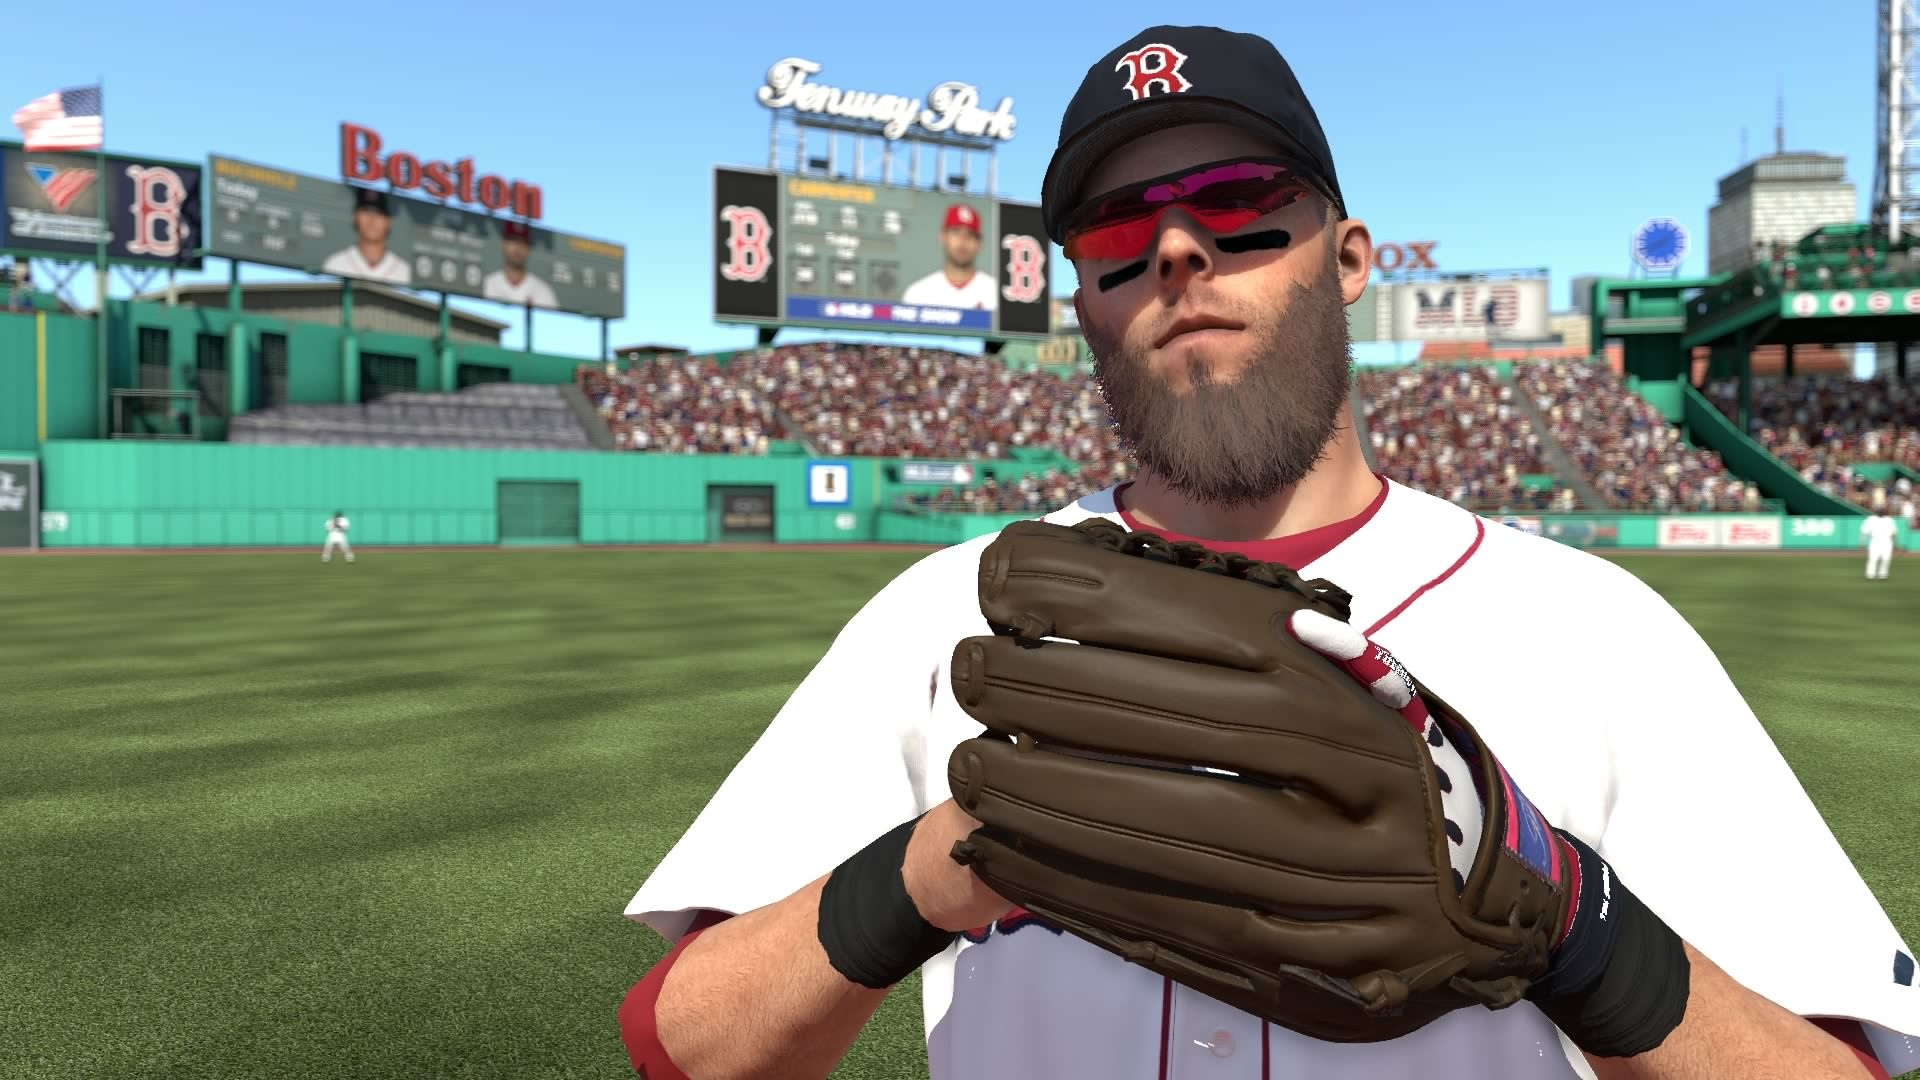 49 49534860_mlb14theshow_ps4_Pedroia1 jpeg - My Photo Gallery